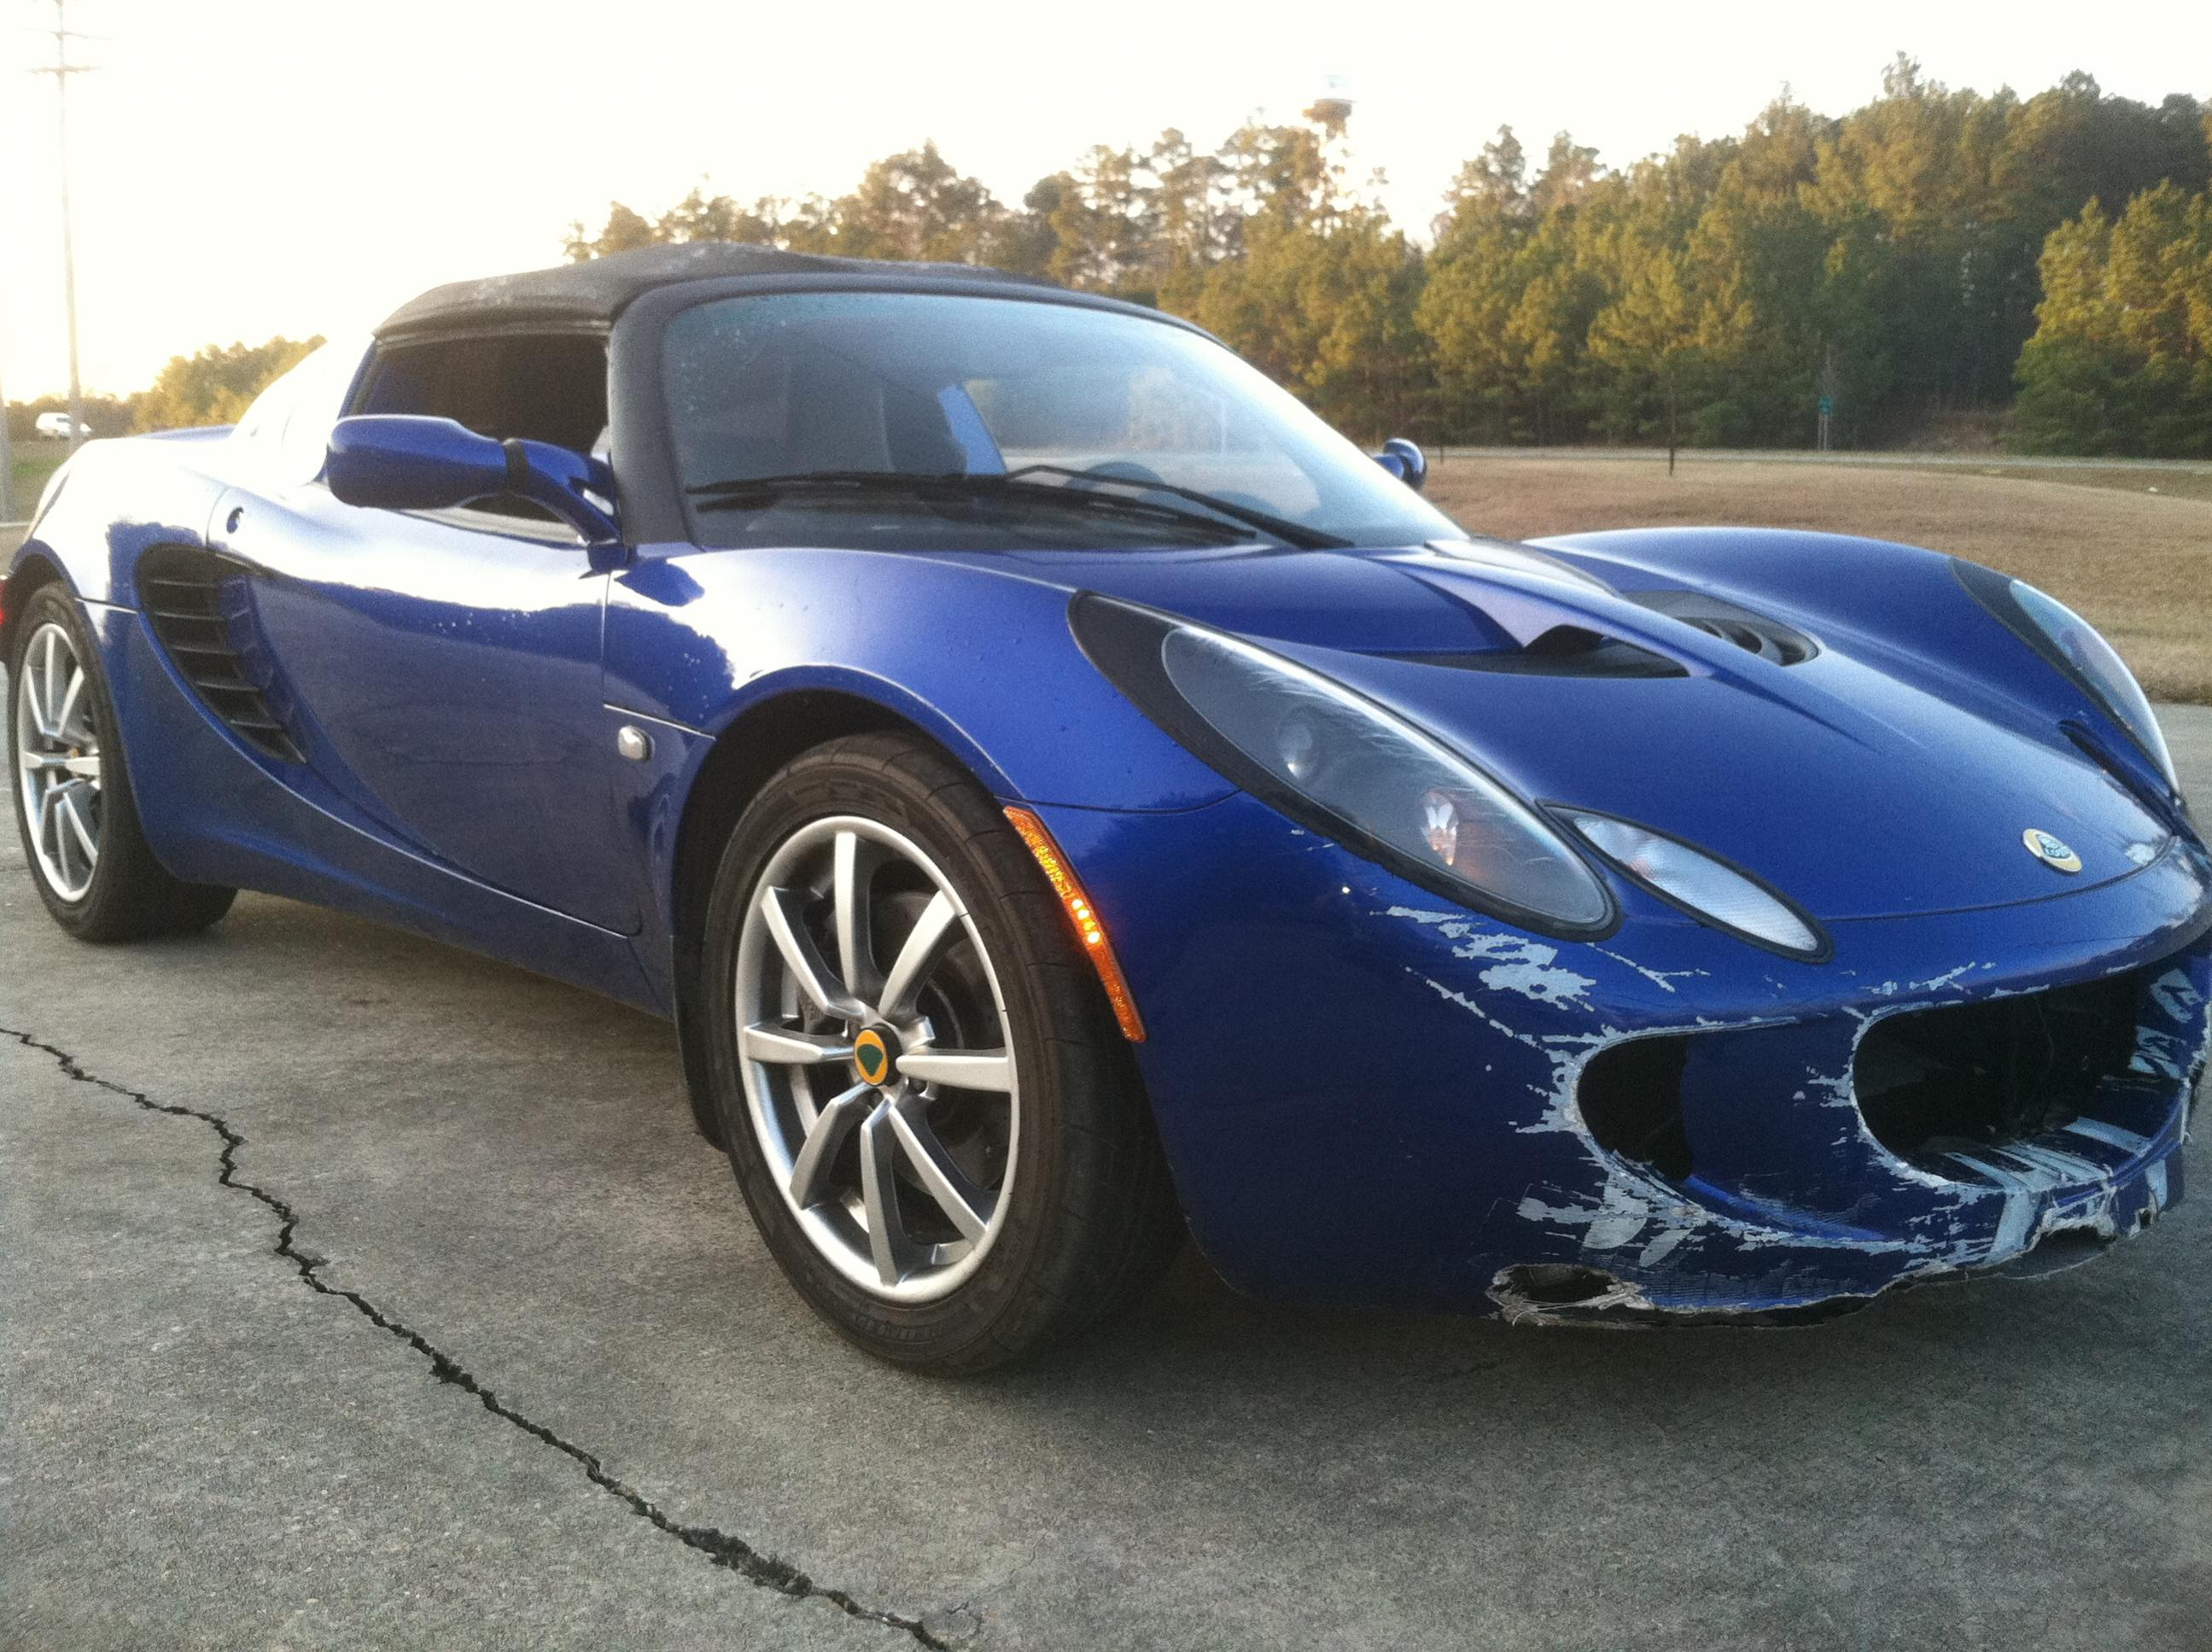 Rebuilt Cars for Sale Near Me New 2005 Lotus Elise for Sale Damaged Repairable Salvage Lotustalk